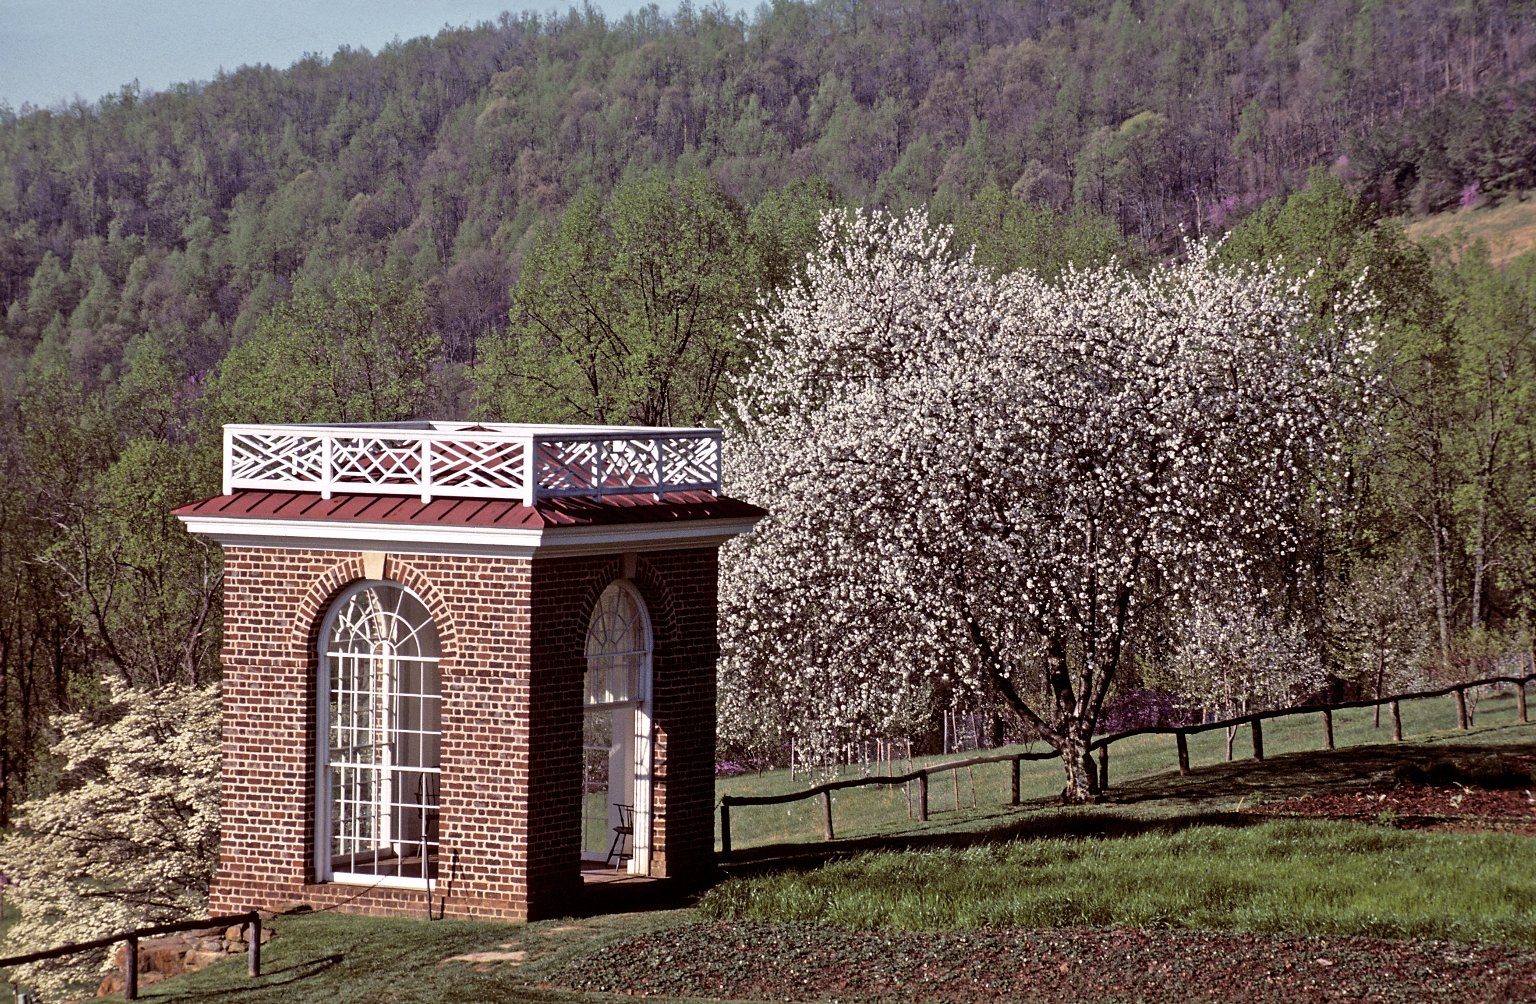 Monticello garden pavilion and blooming prunus in orchard